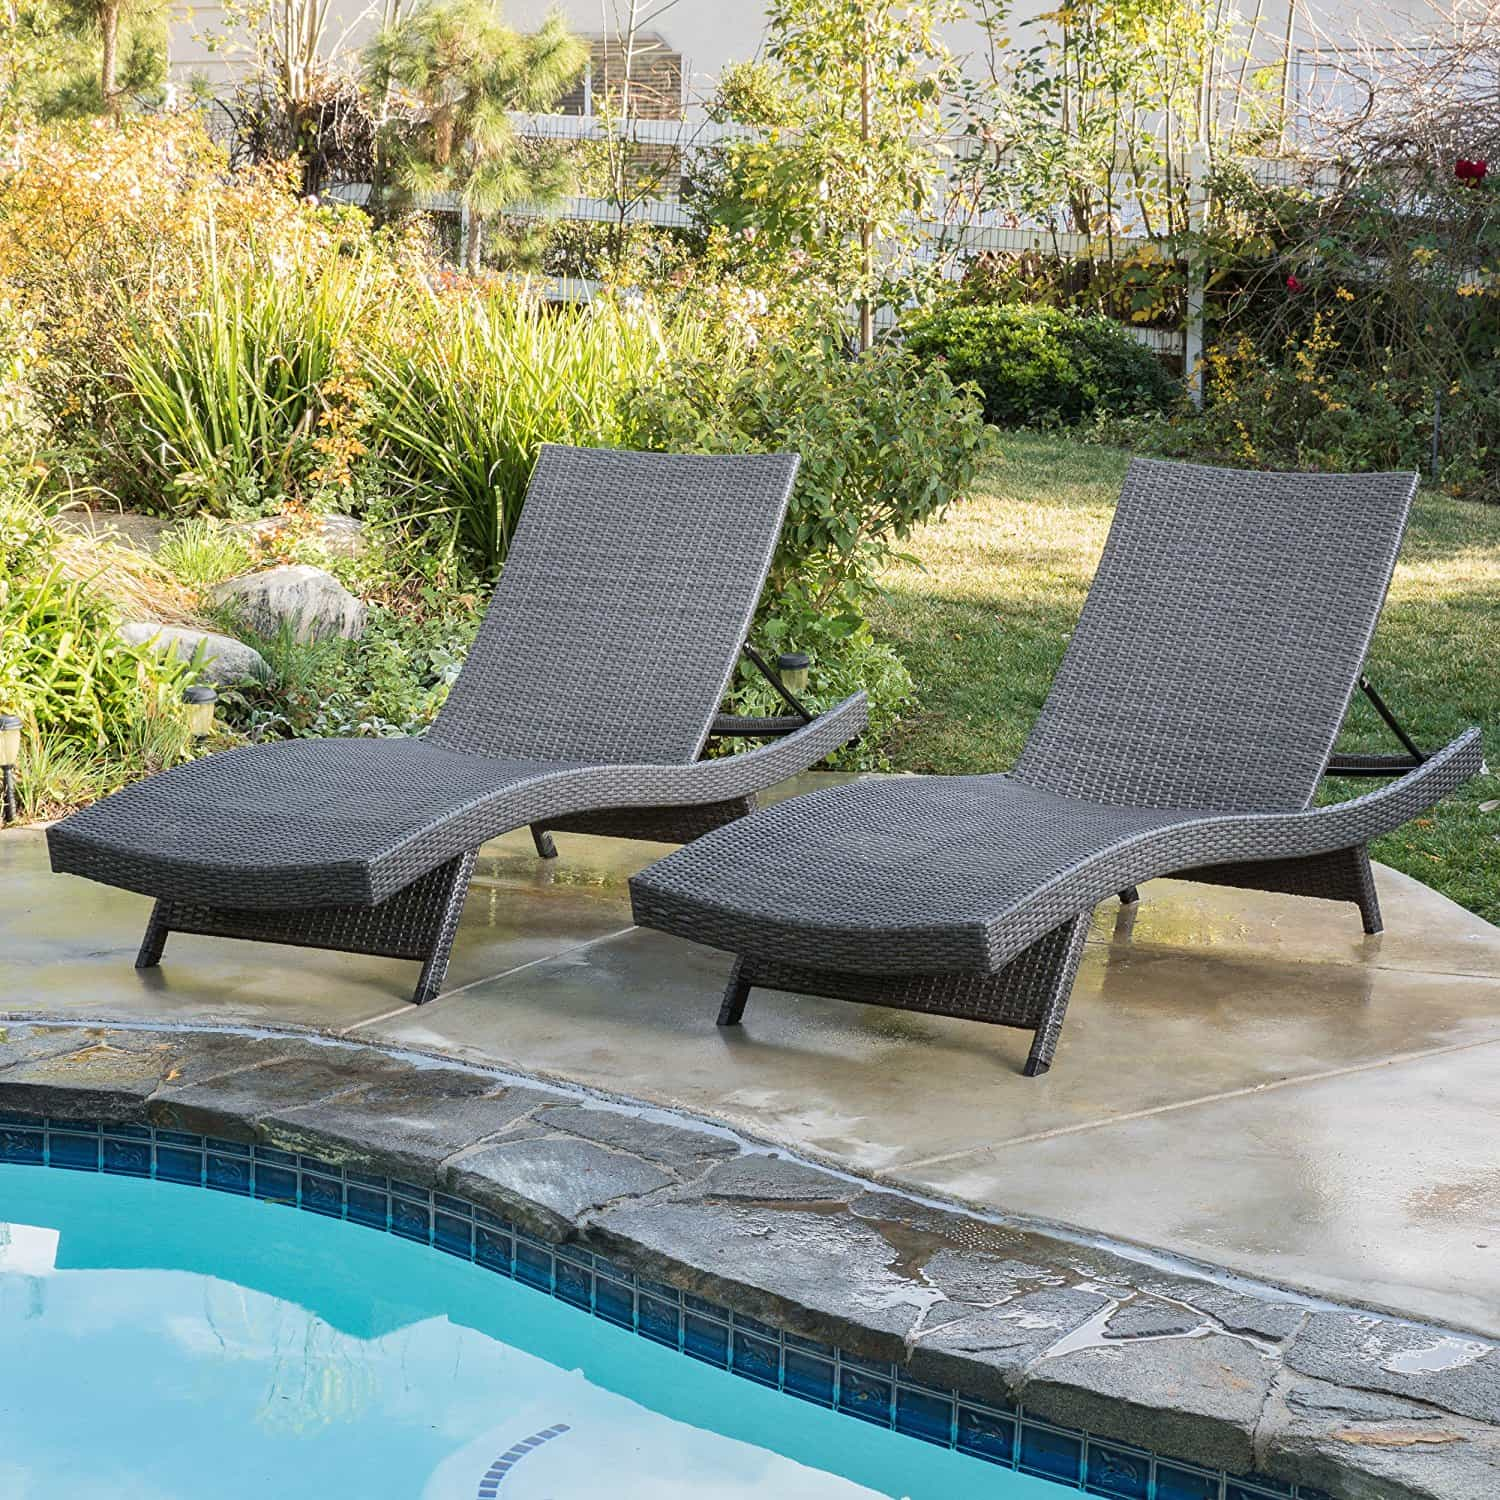 3 Best Outdoor Lounge Chair Patio Reviewed October 2019